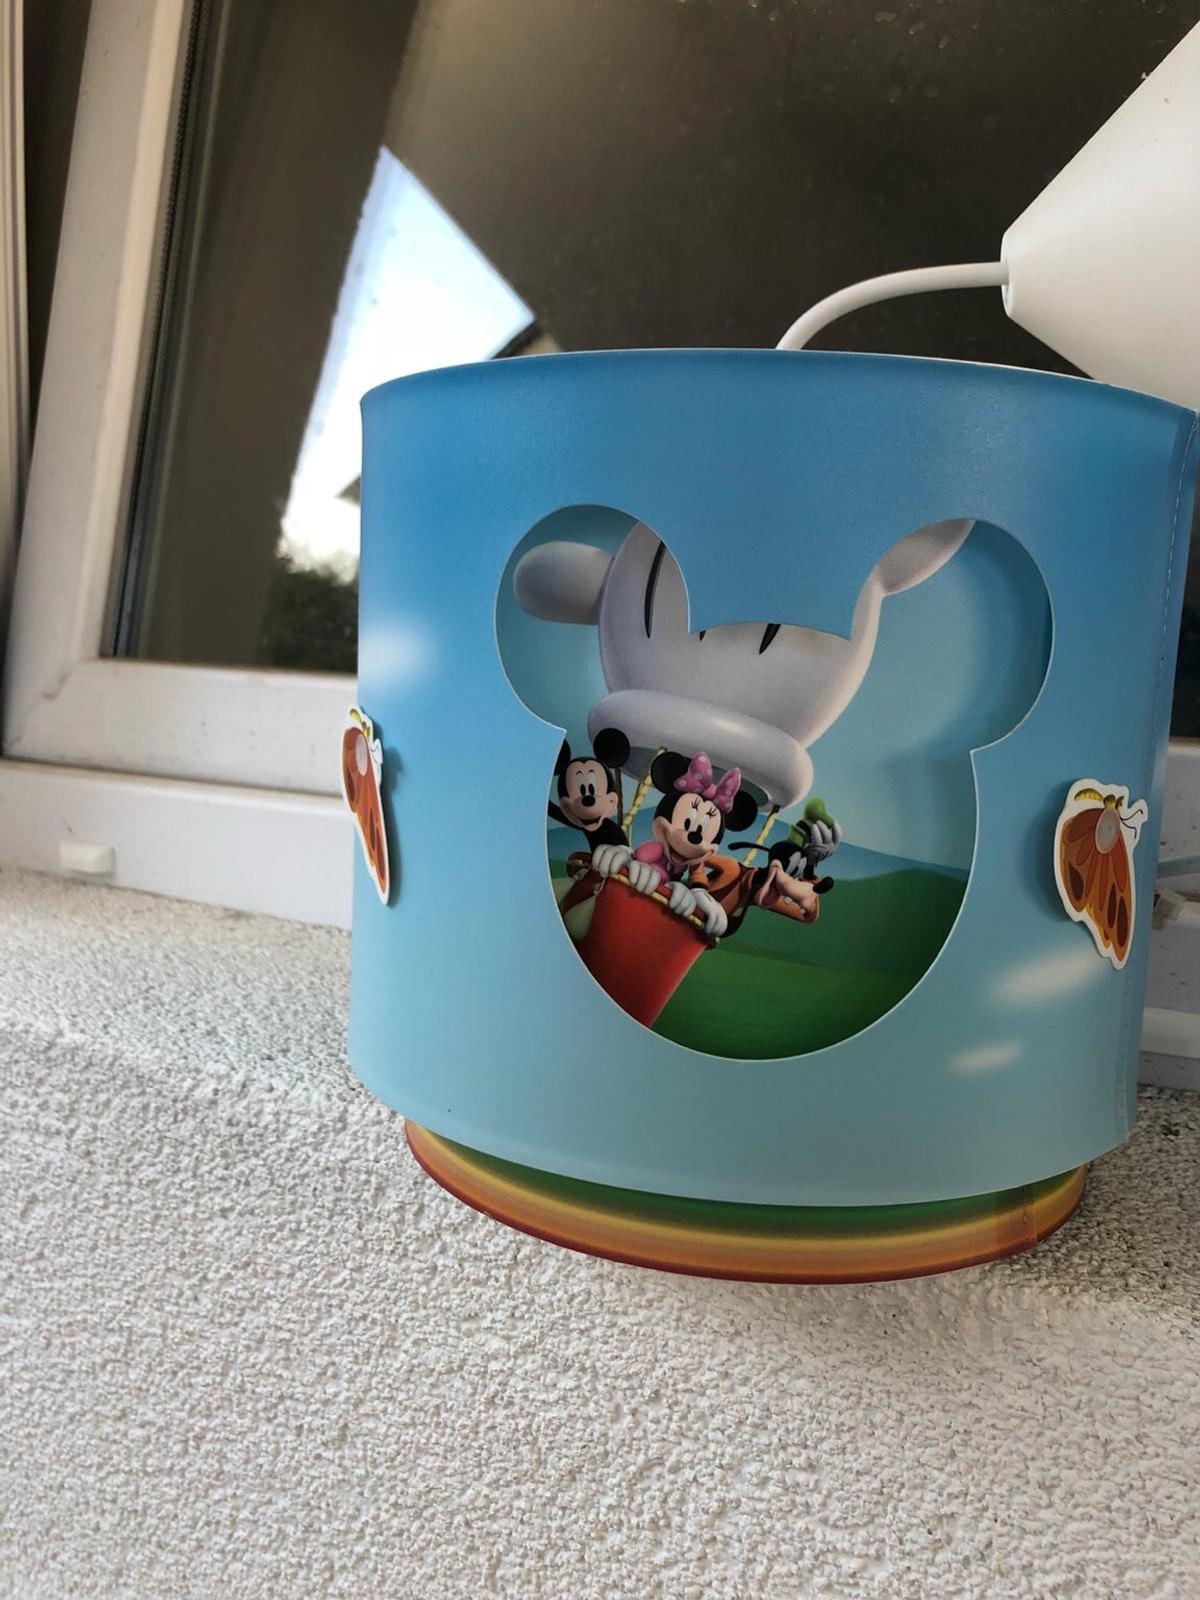 Mickey mouse lampe in 64747 Breuberg für € 5,00 kaufen - Shpock